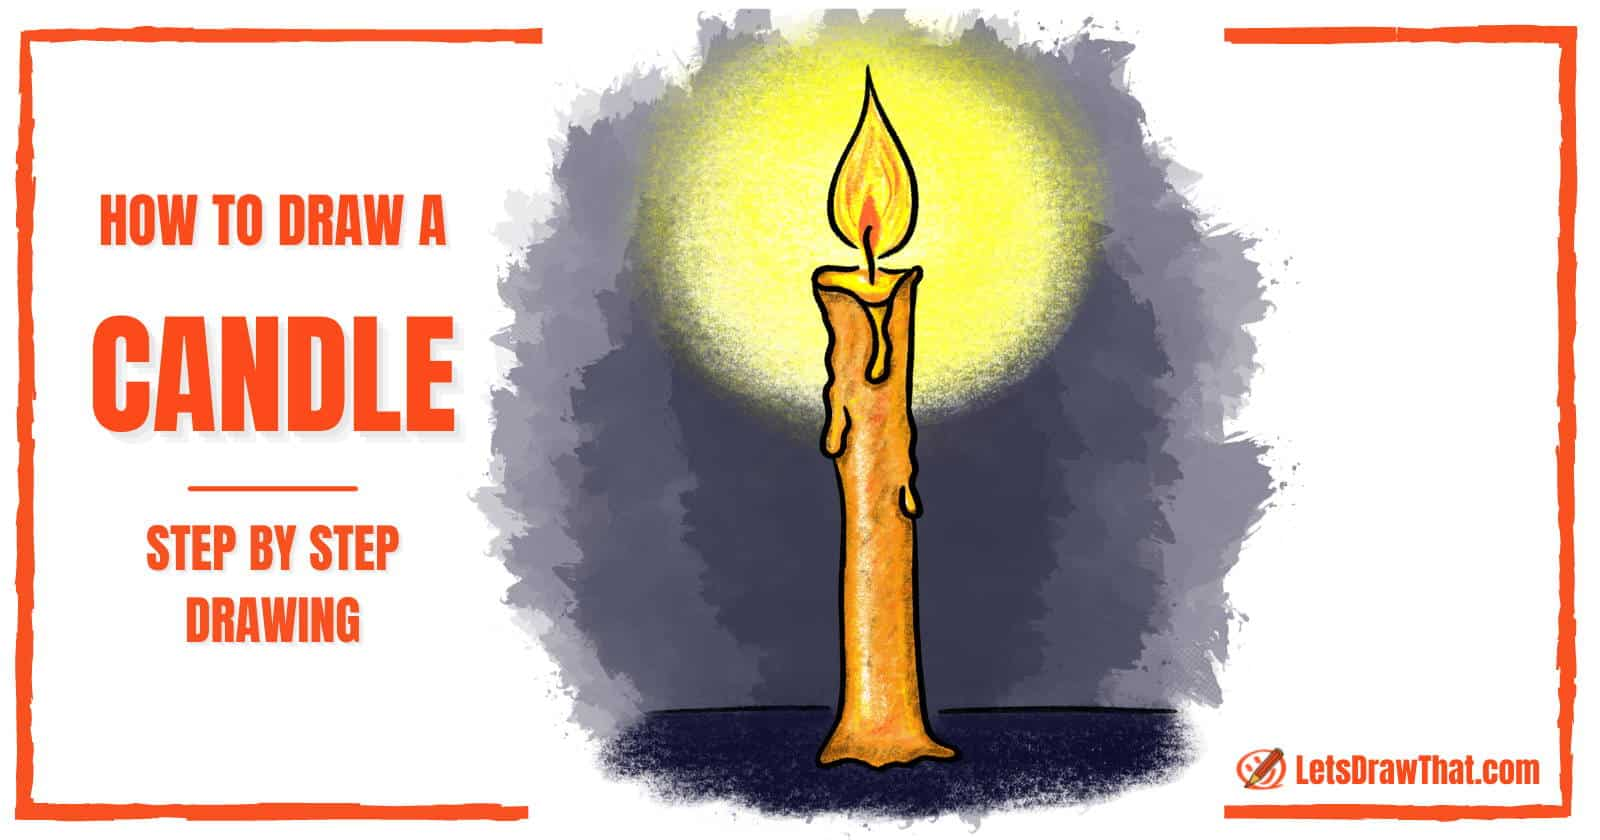 How To Draw a Candle - A Really Easy Candle Drawing - step-by-step-drawing tutorial featured image